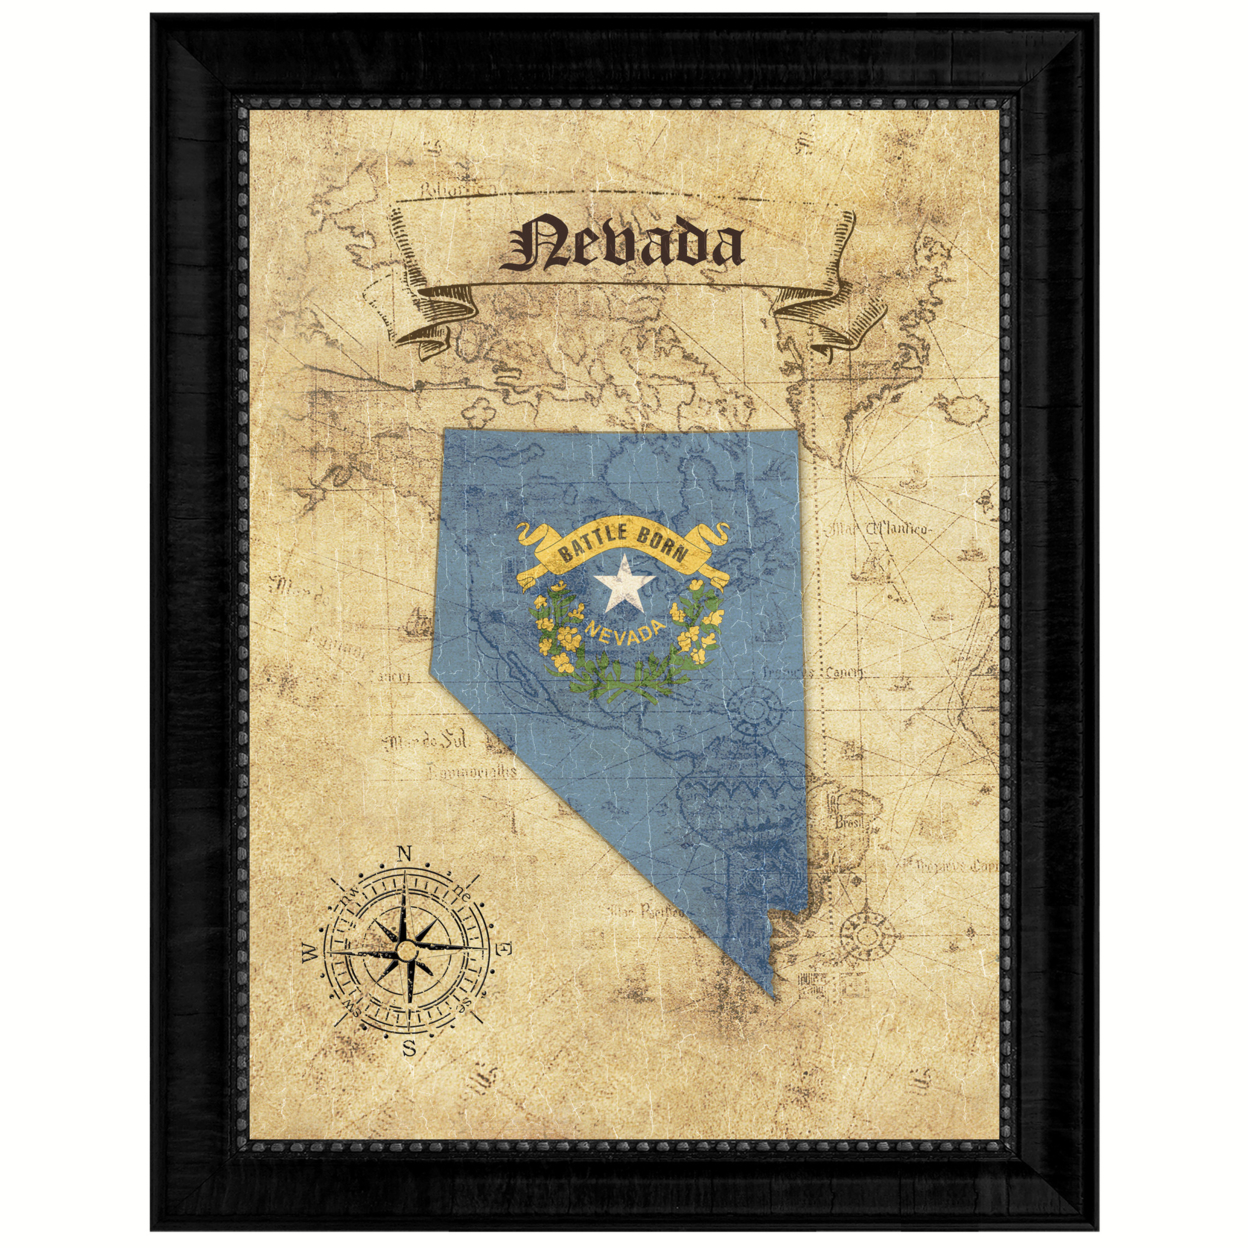 Nevada State Flag Vintage Map Canvas Print With Picture Frame Home Decor Wall Art Decoration Gift Ideas